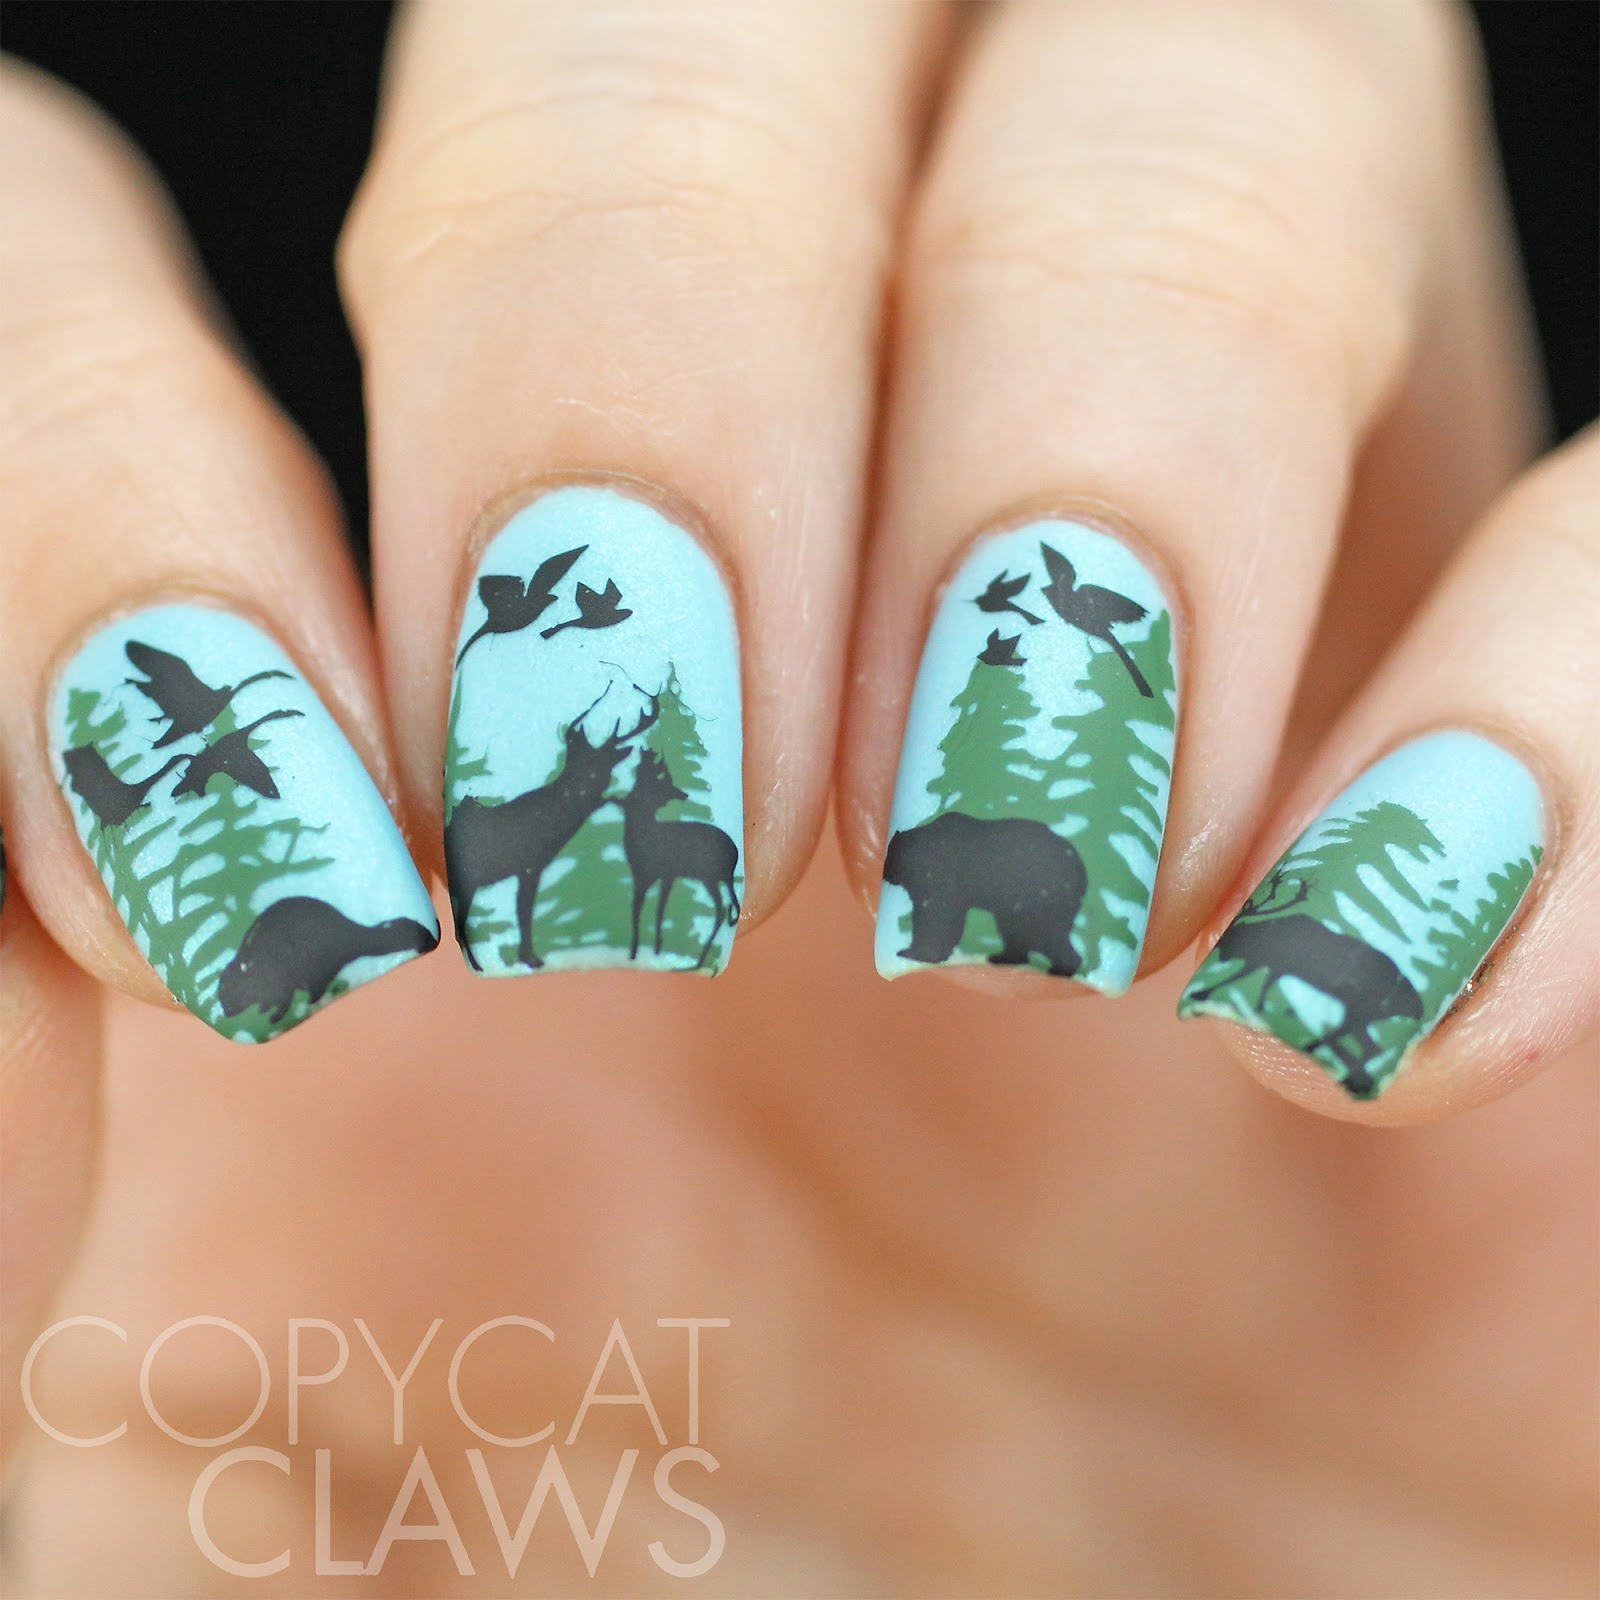 Copycat claws 40 great nail art ideas animals ive put on my nails either at the lake or on the way to the lake usually right in front of my caryikes keep reading to see all the details prinsesfo Images